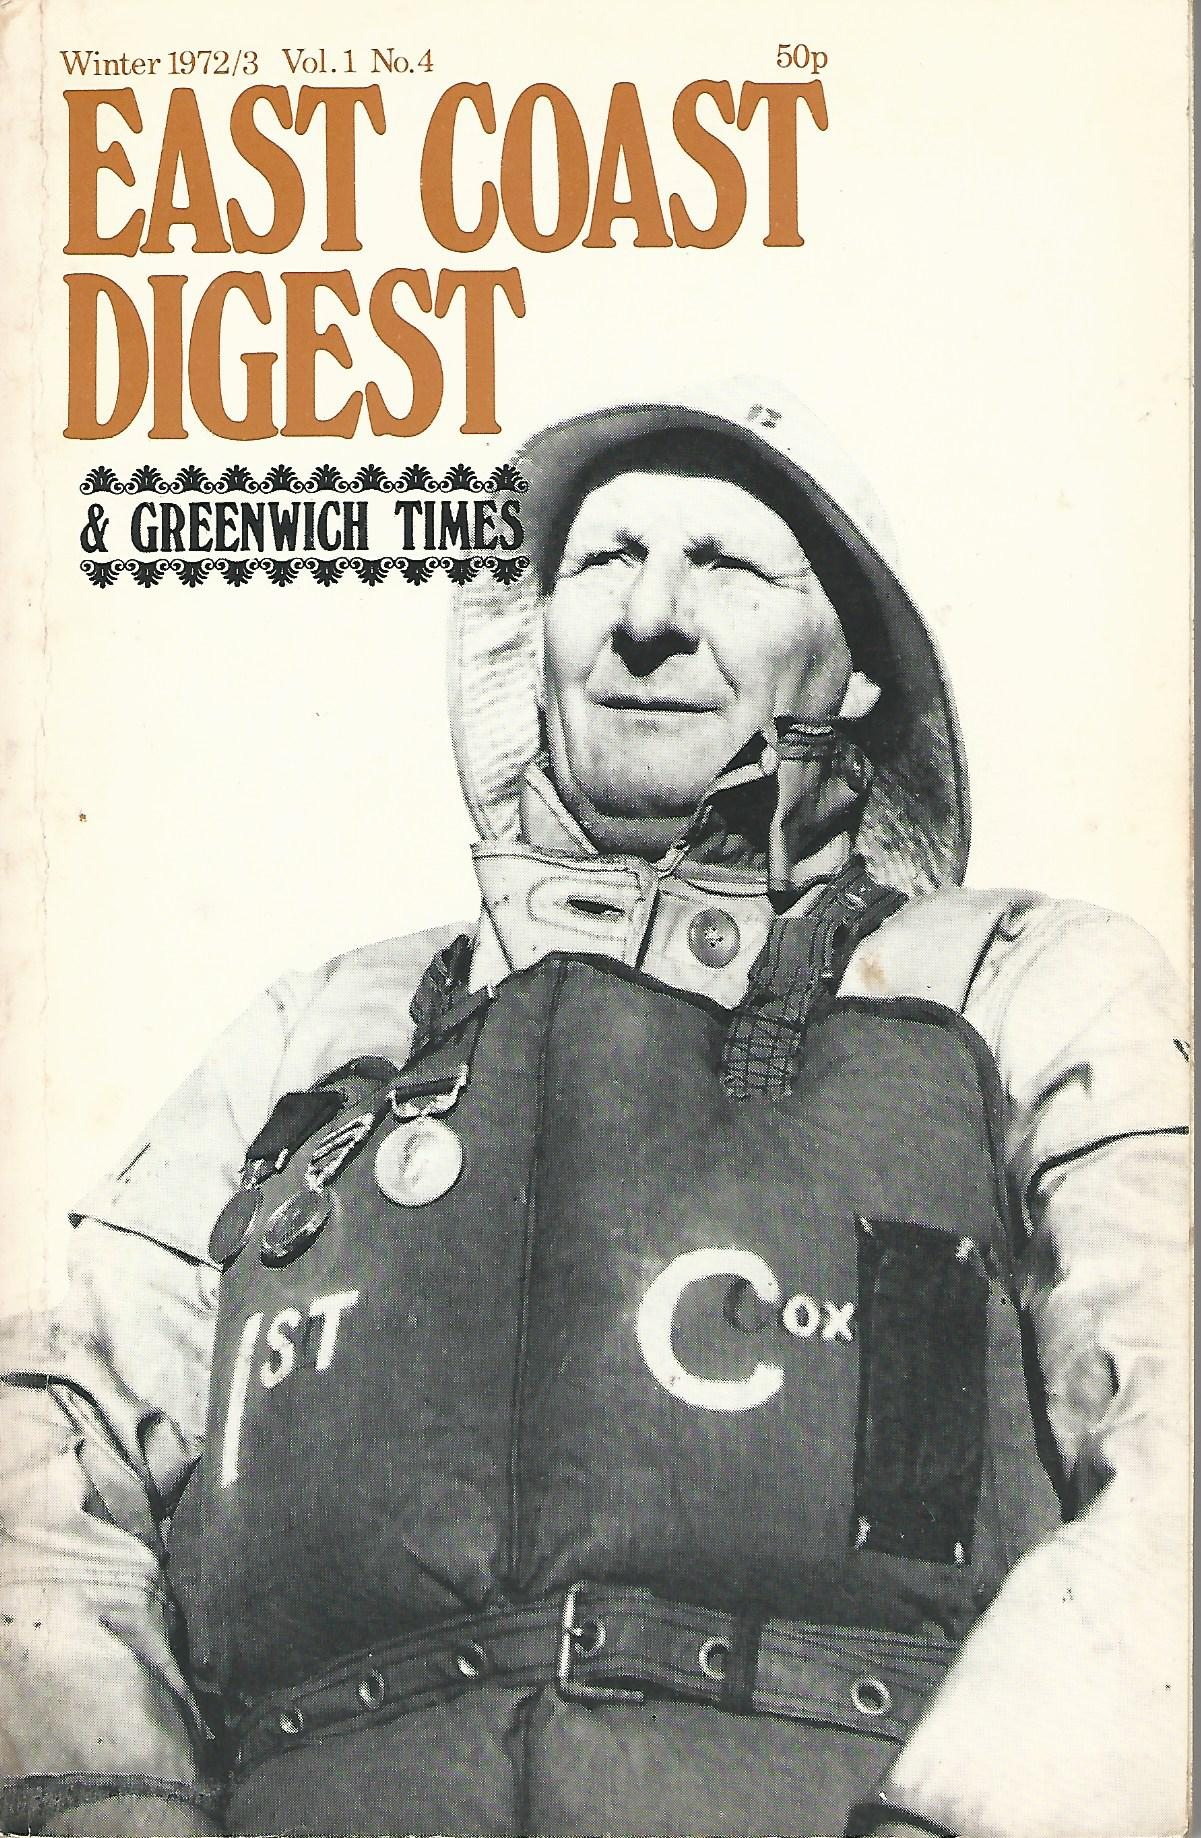 Image for East Coast Digest & Greenwich Times Vol.1 No.4.